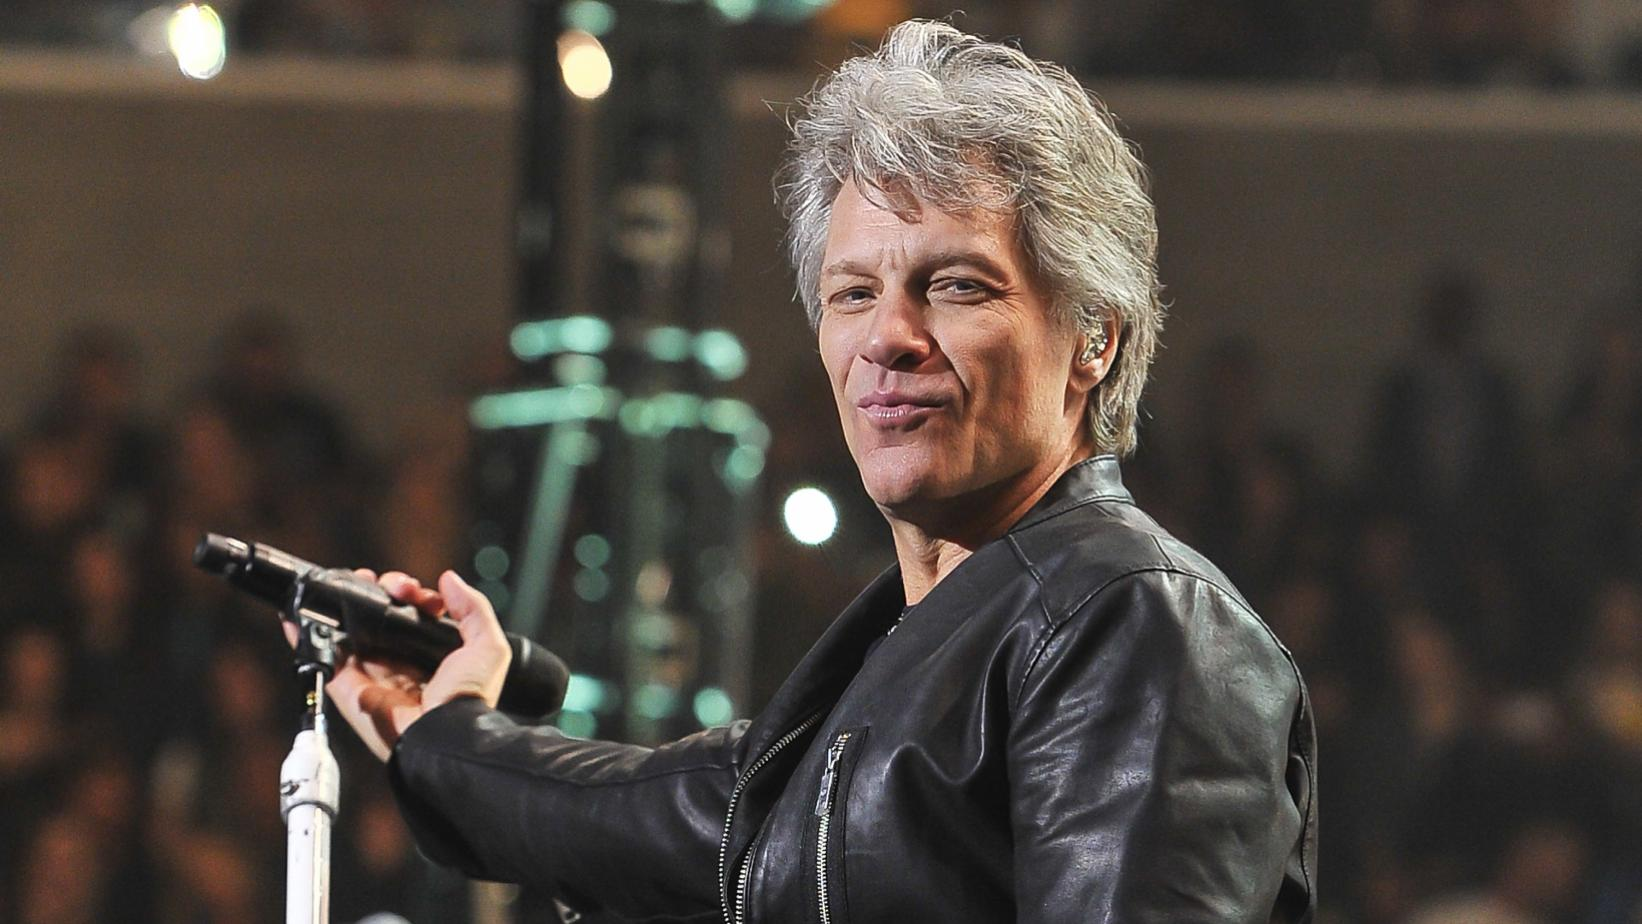 Jon Bon Jovi performs live in 2017